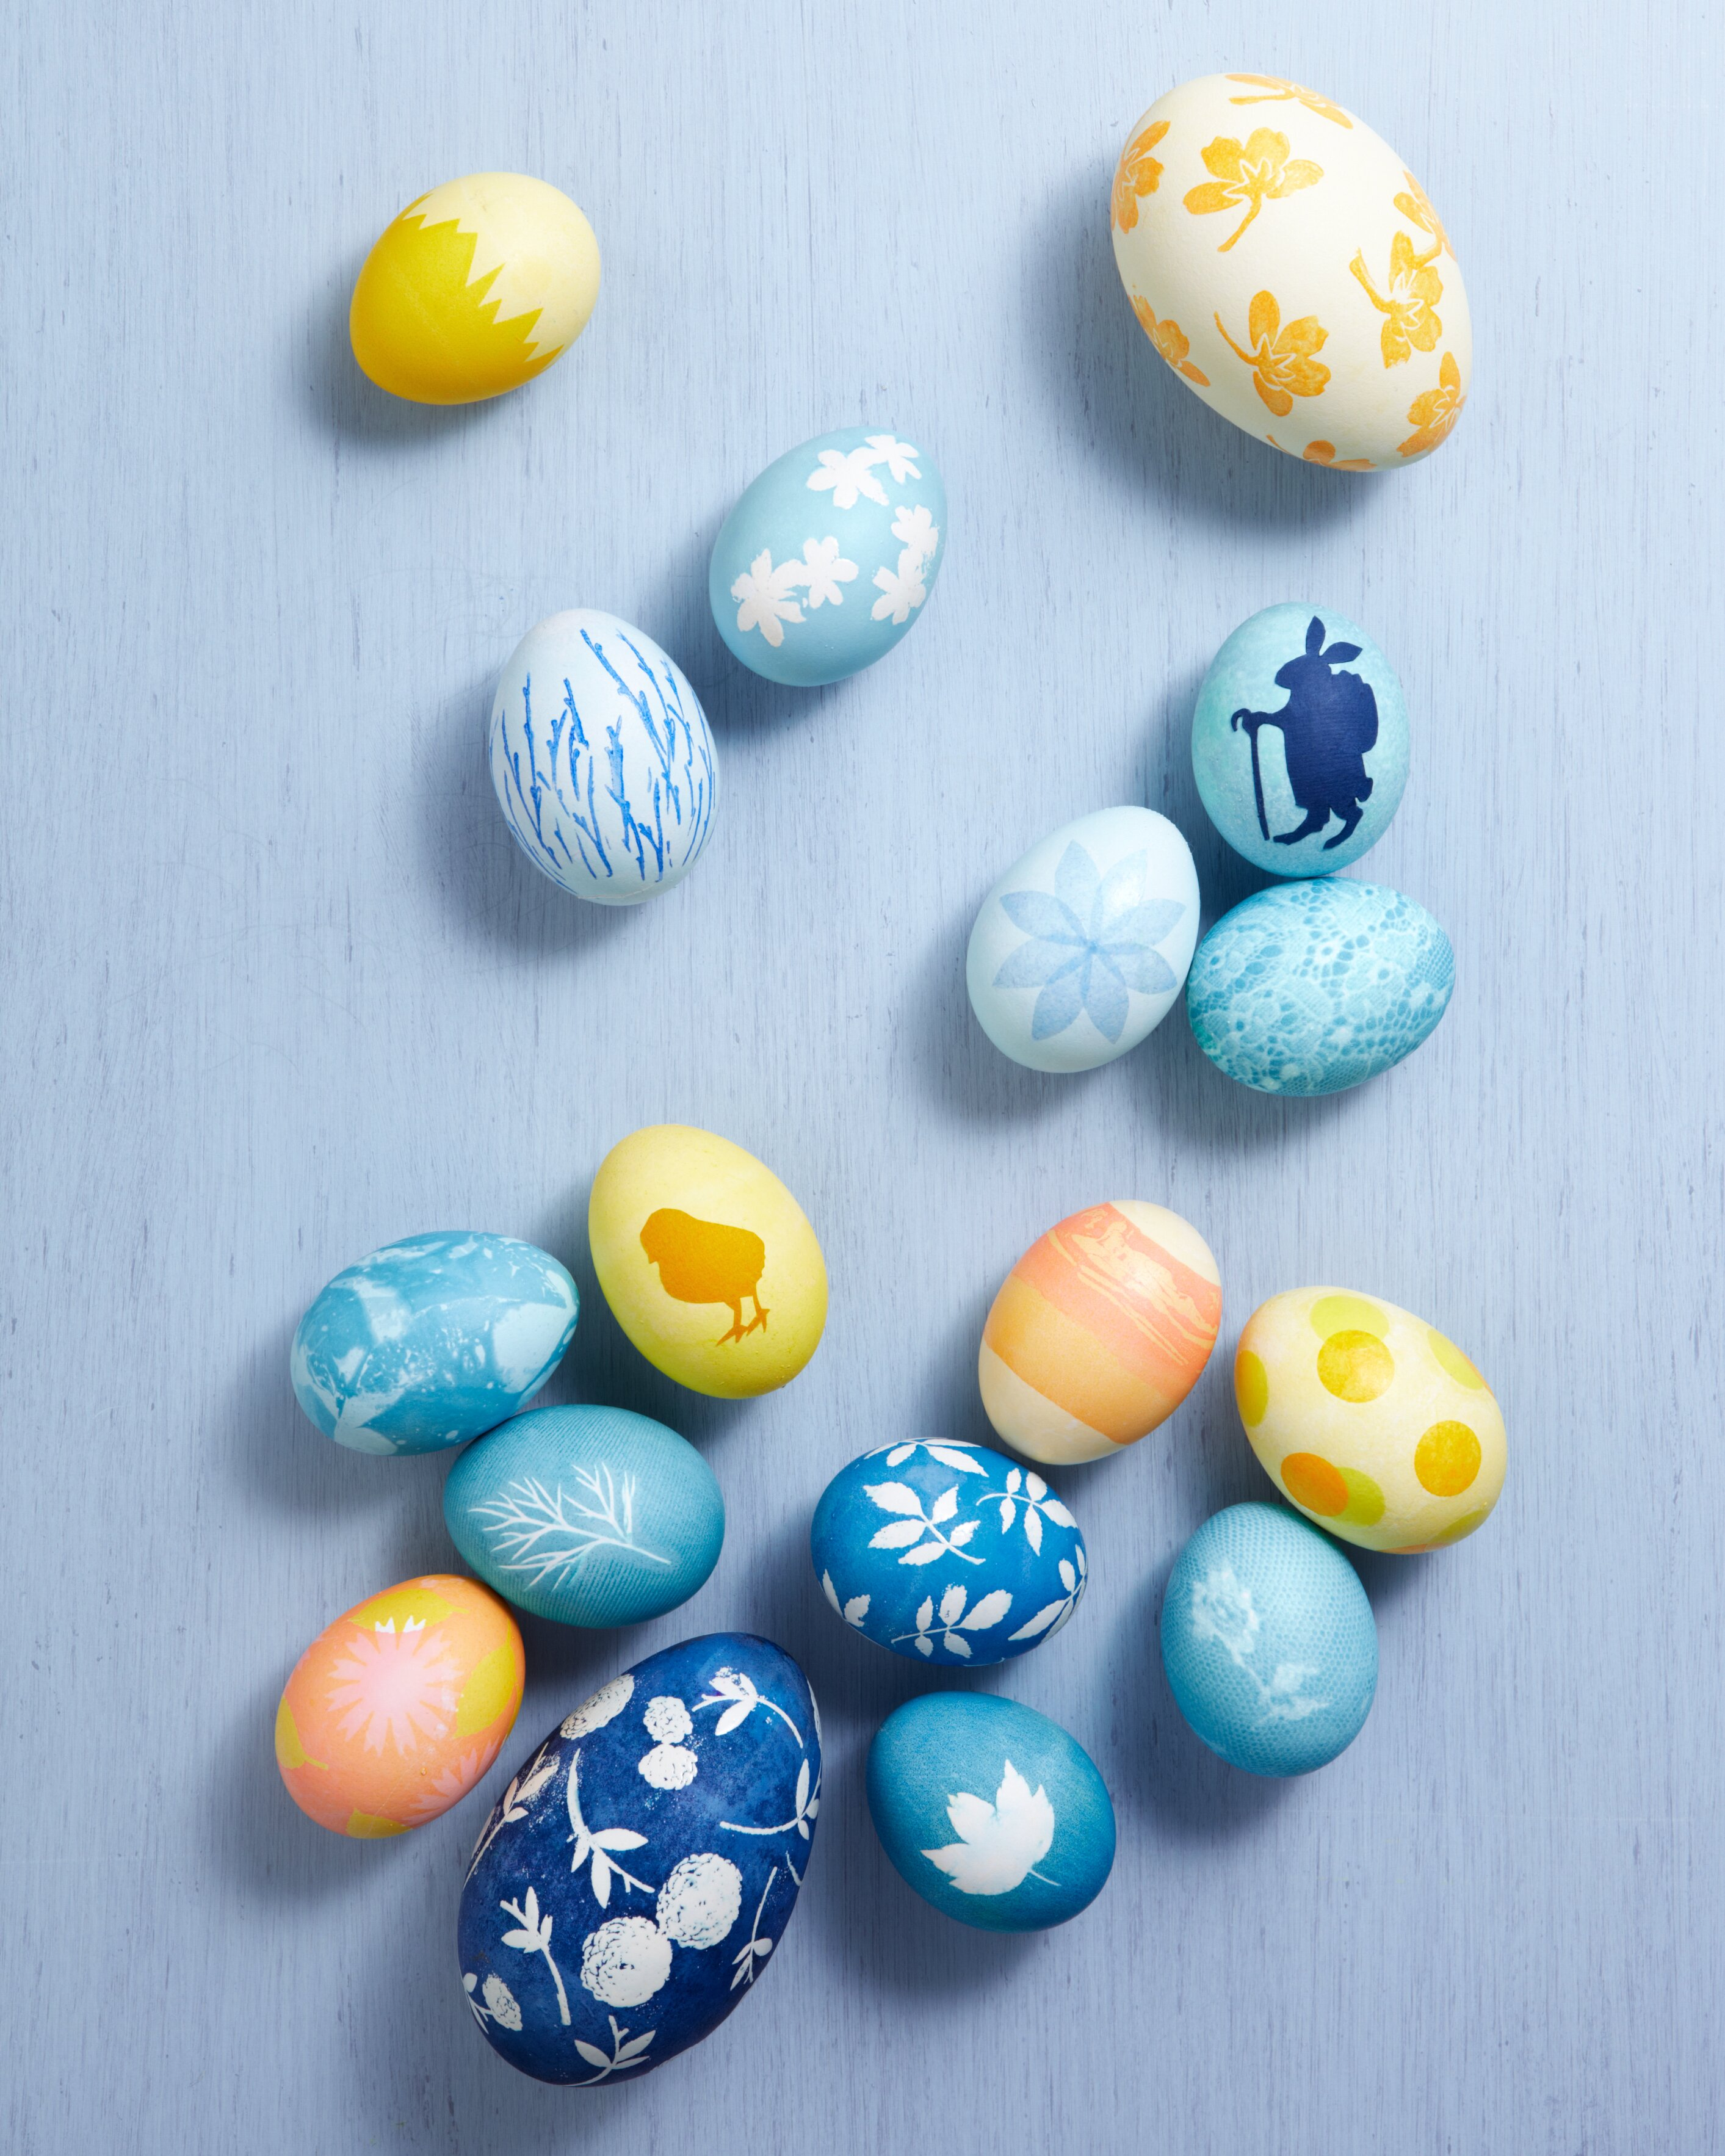 9 of Our All-Time Best Ideas for Decorating Easter Eggs  Martha